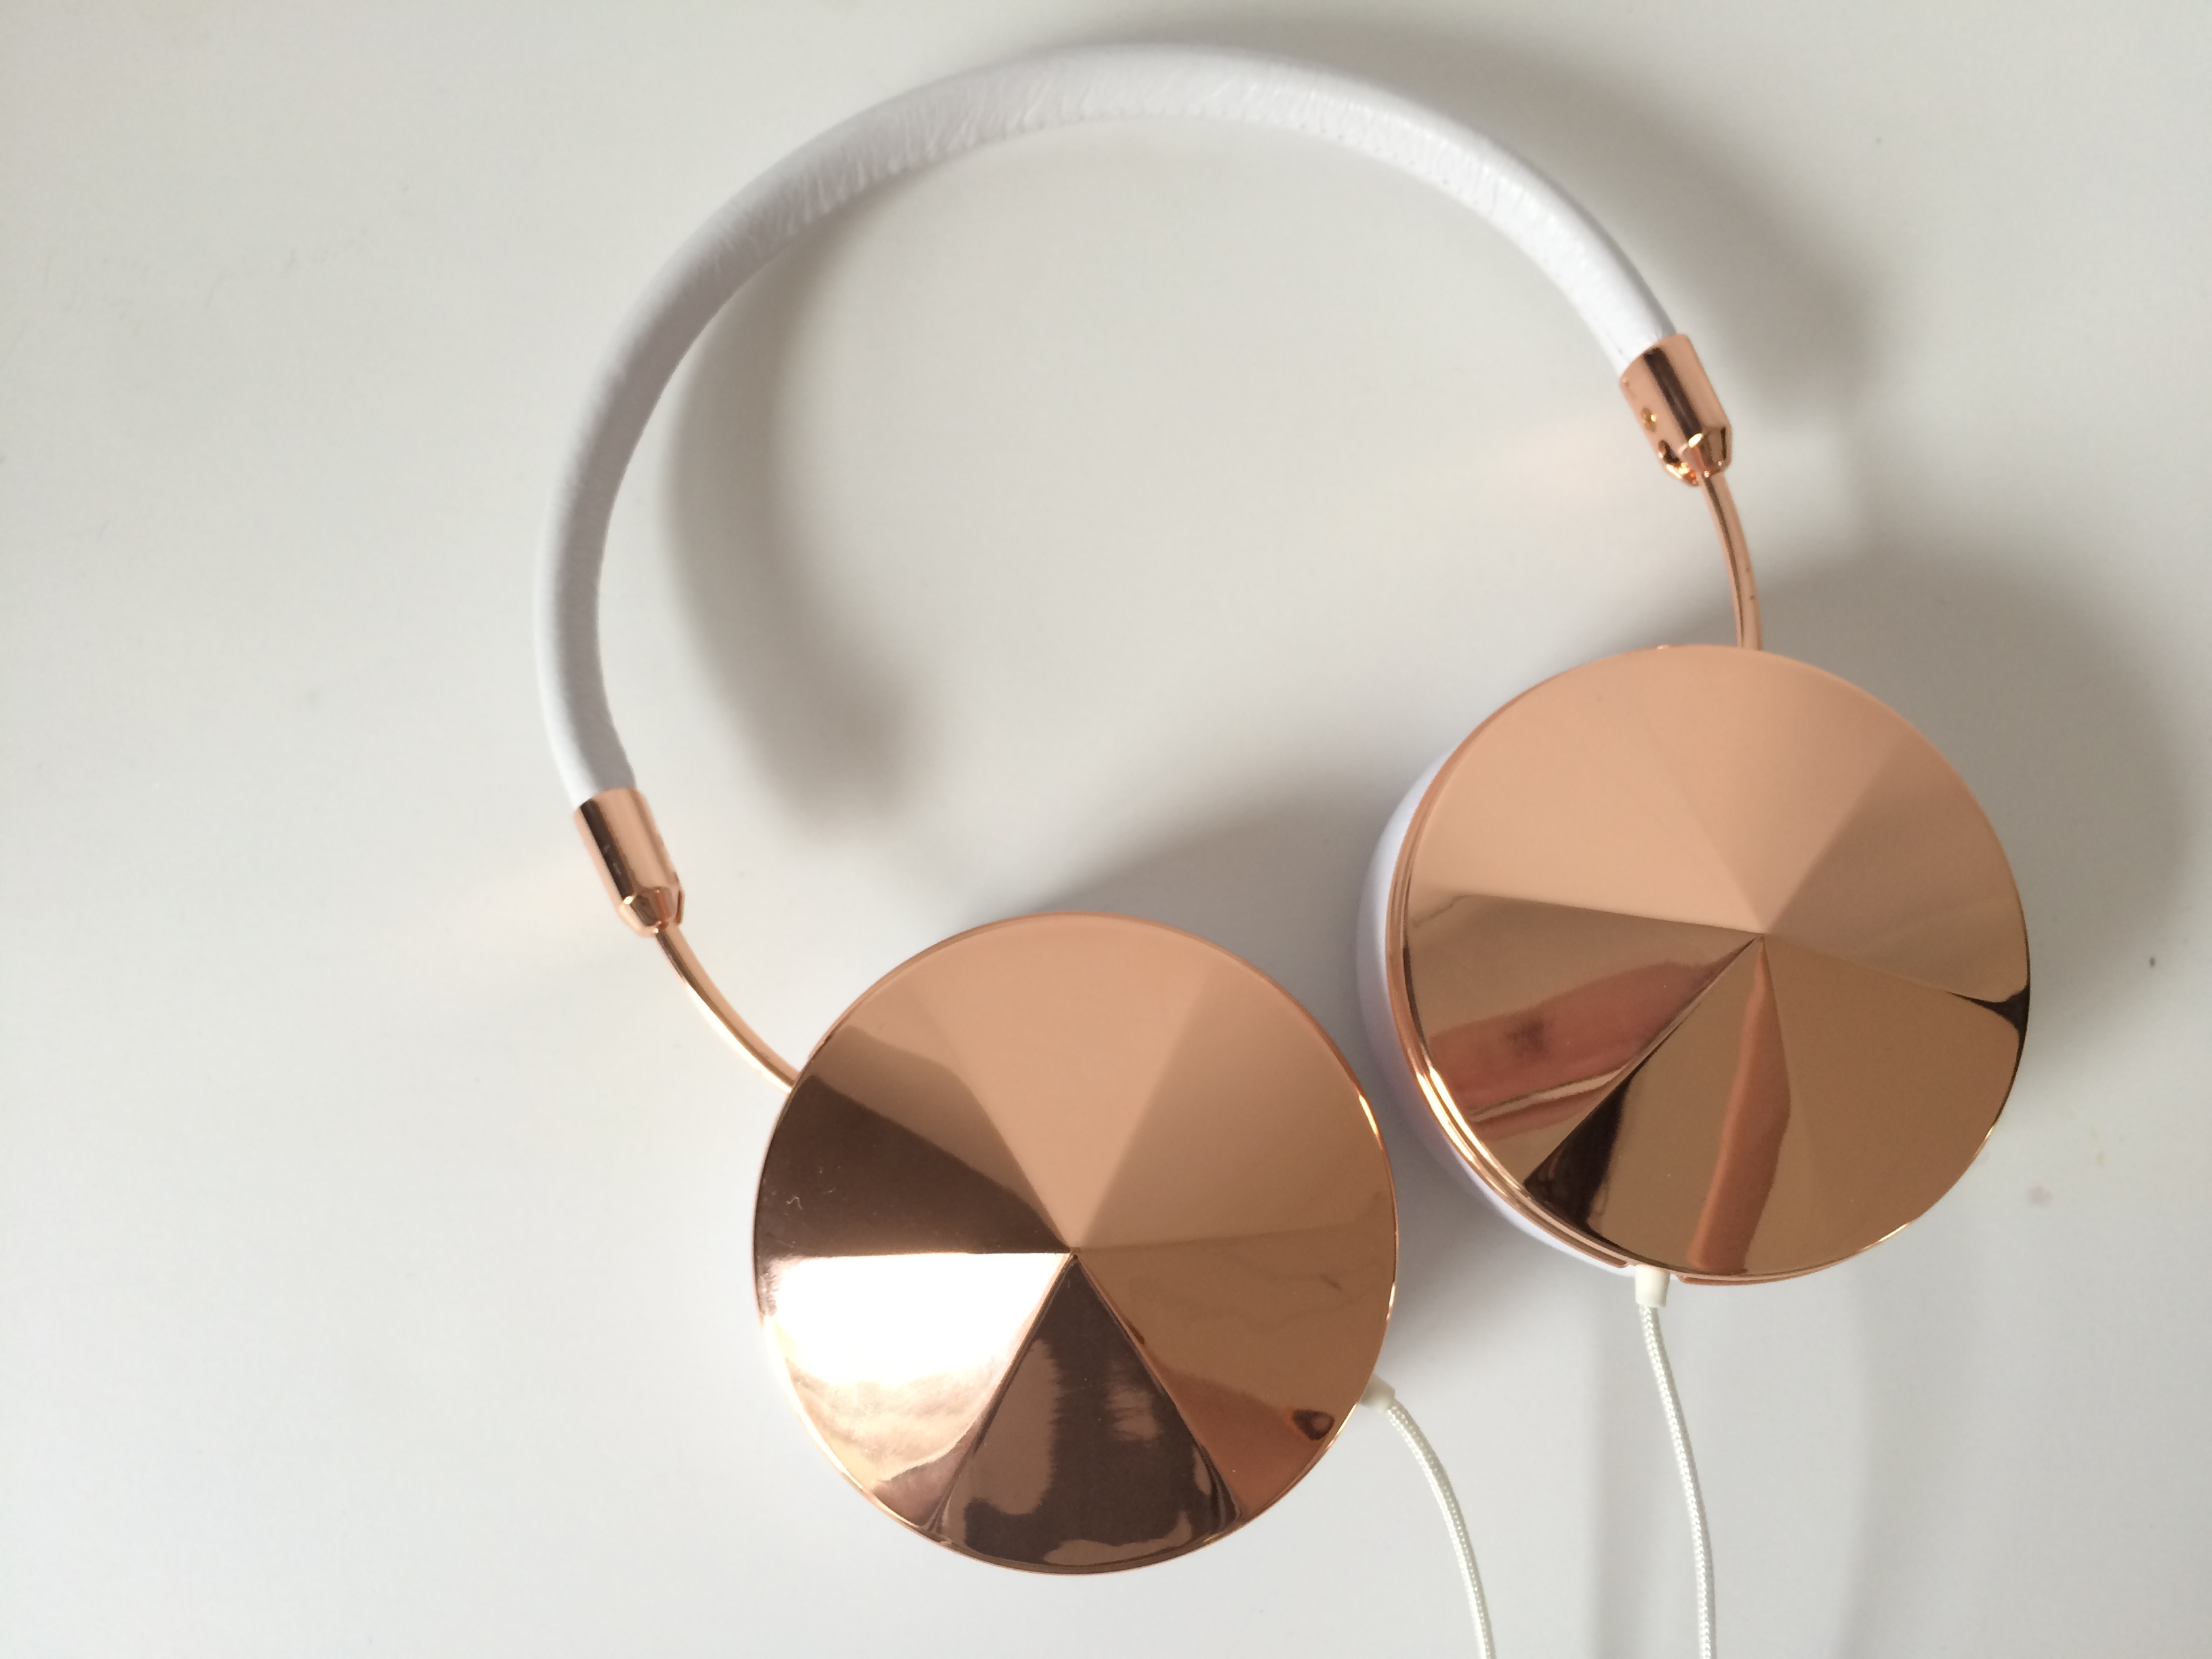 In ear earbuds rose gold - noise cancelling earbuds nose